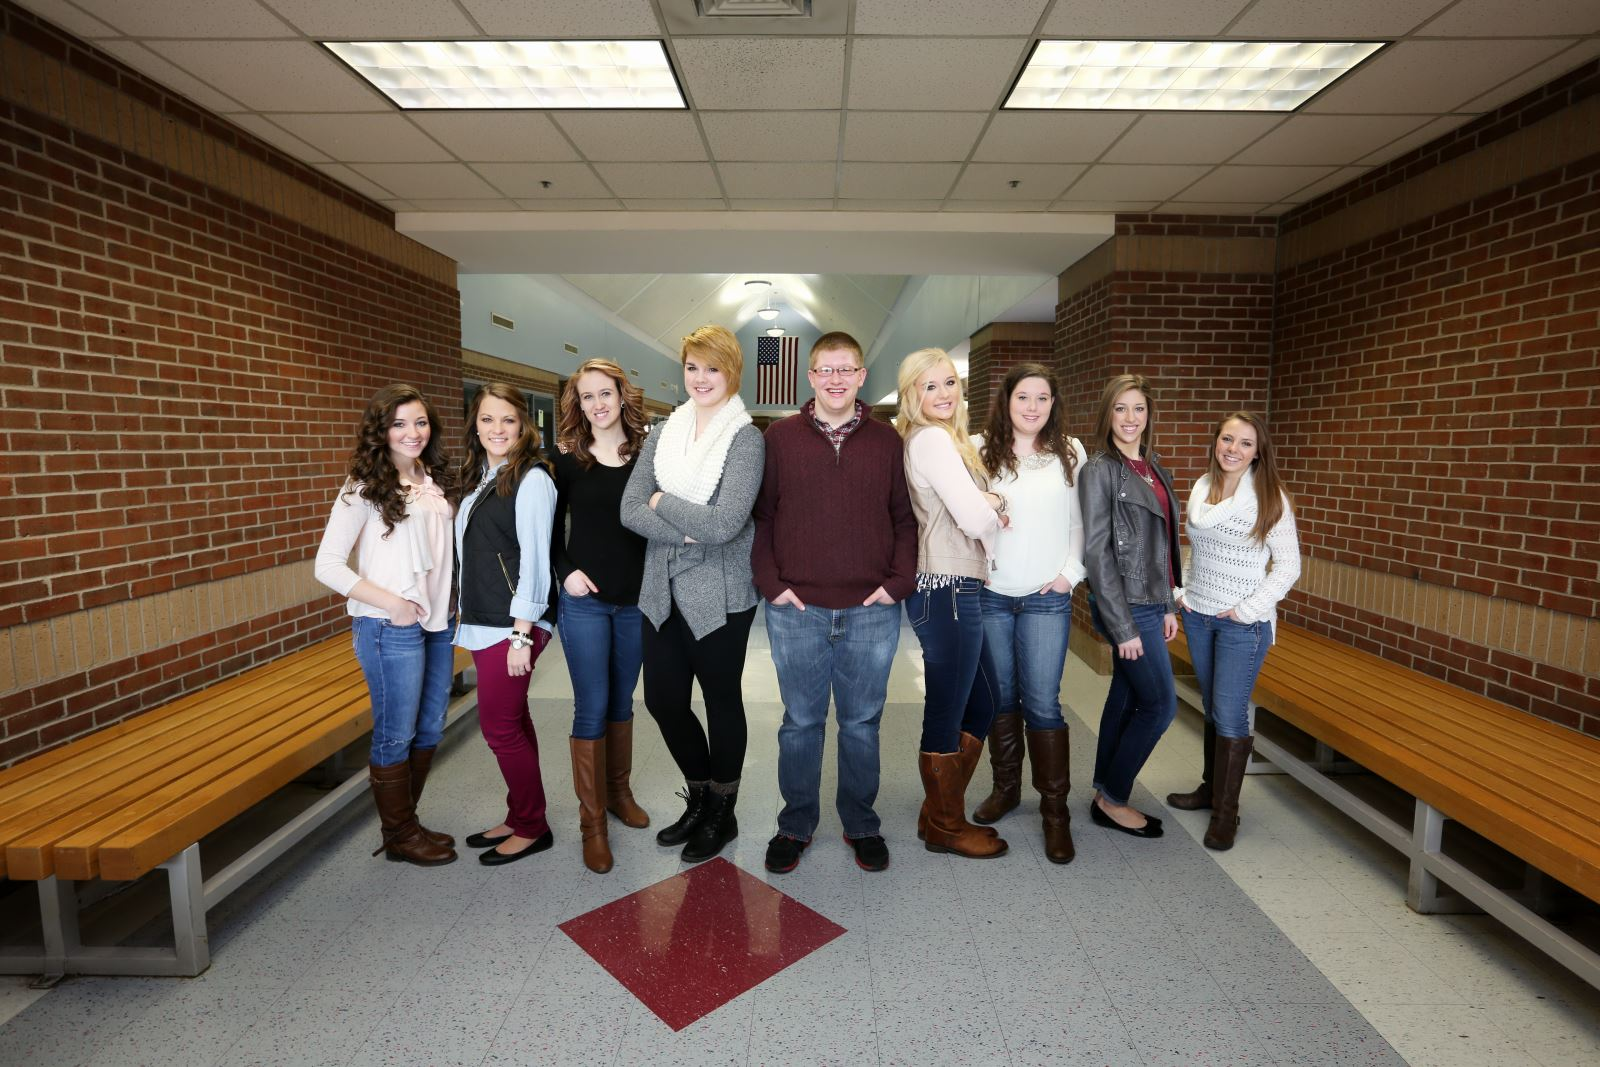 The Yearbook Staff L R Melody Massengale Tori Bell Claudia De Hay Haley Saylor Braxton Shearer Savannah Upchurch Taylor Griggs Mallory Hurd